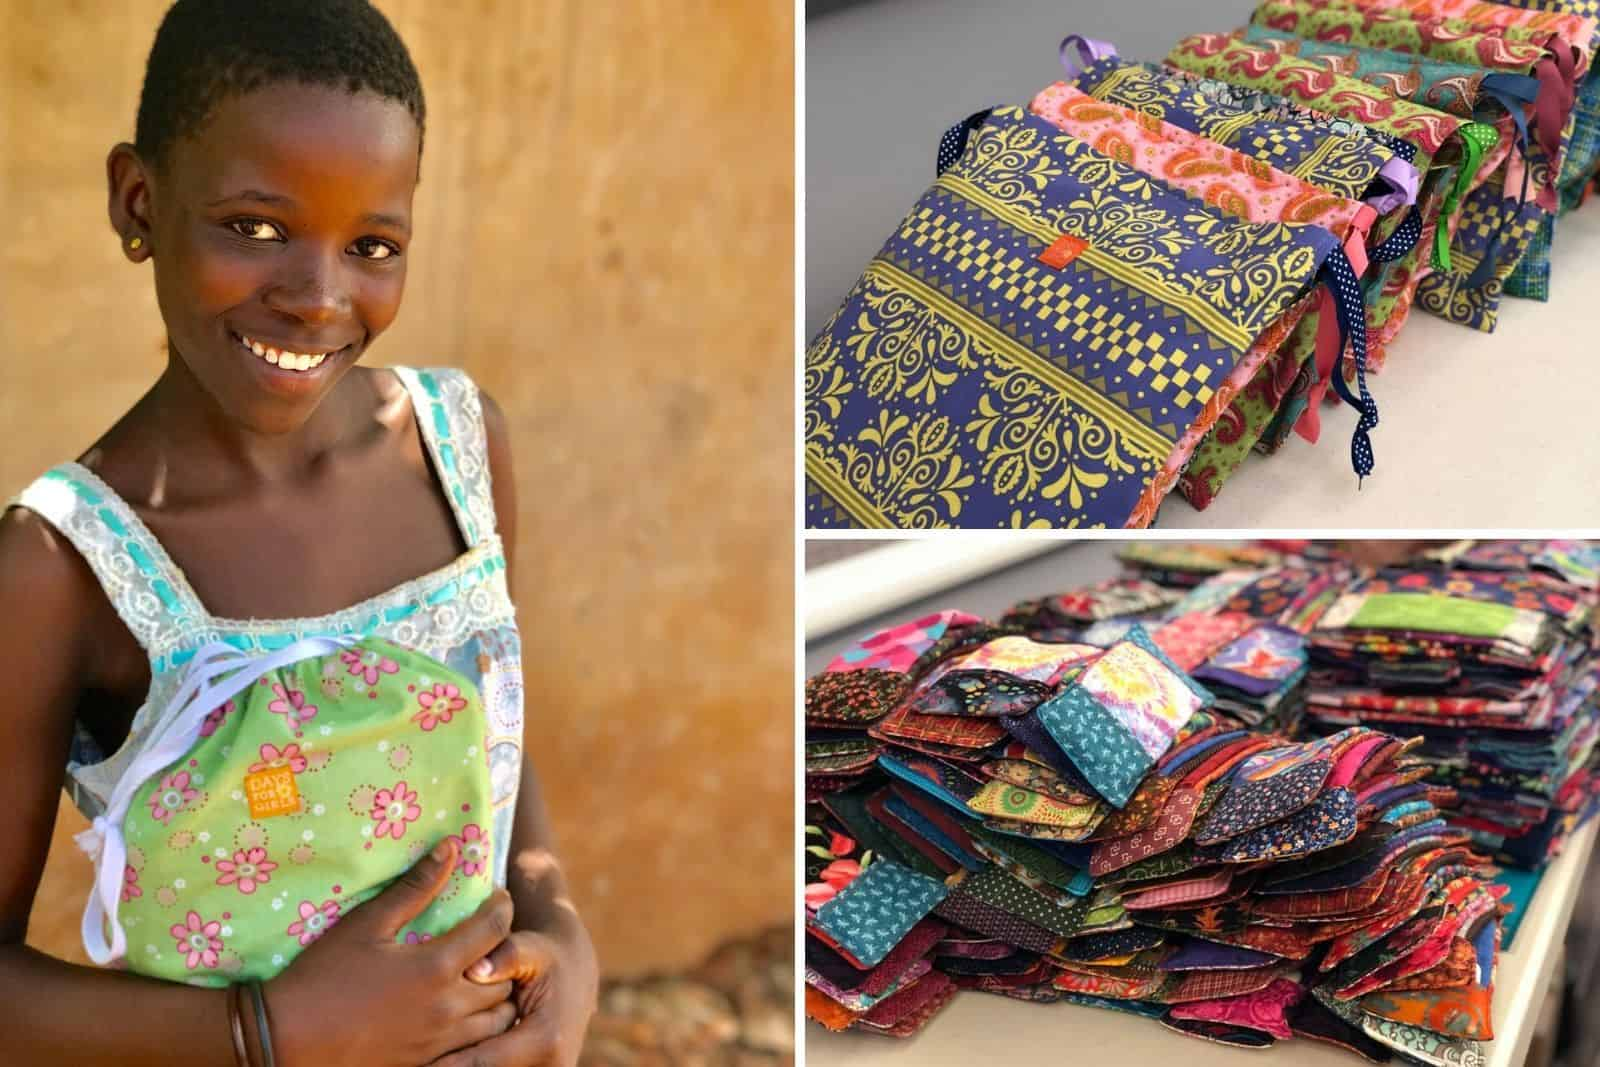 A picture of a girl holding a flowered cloth bag and colorful cloth pads.